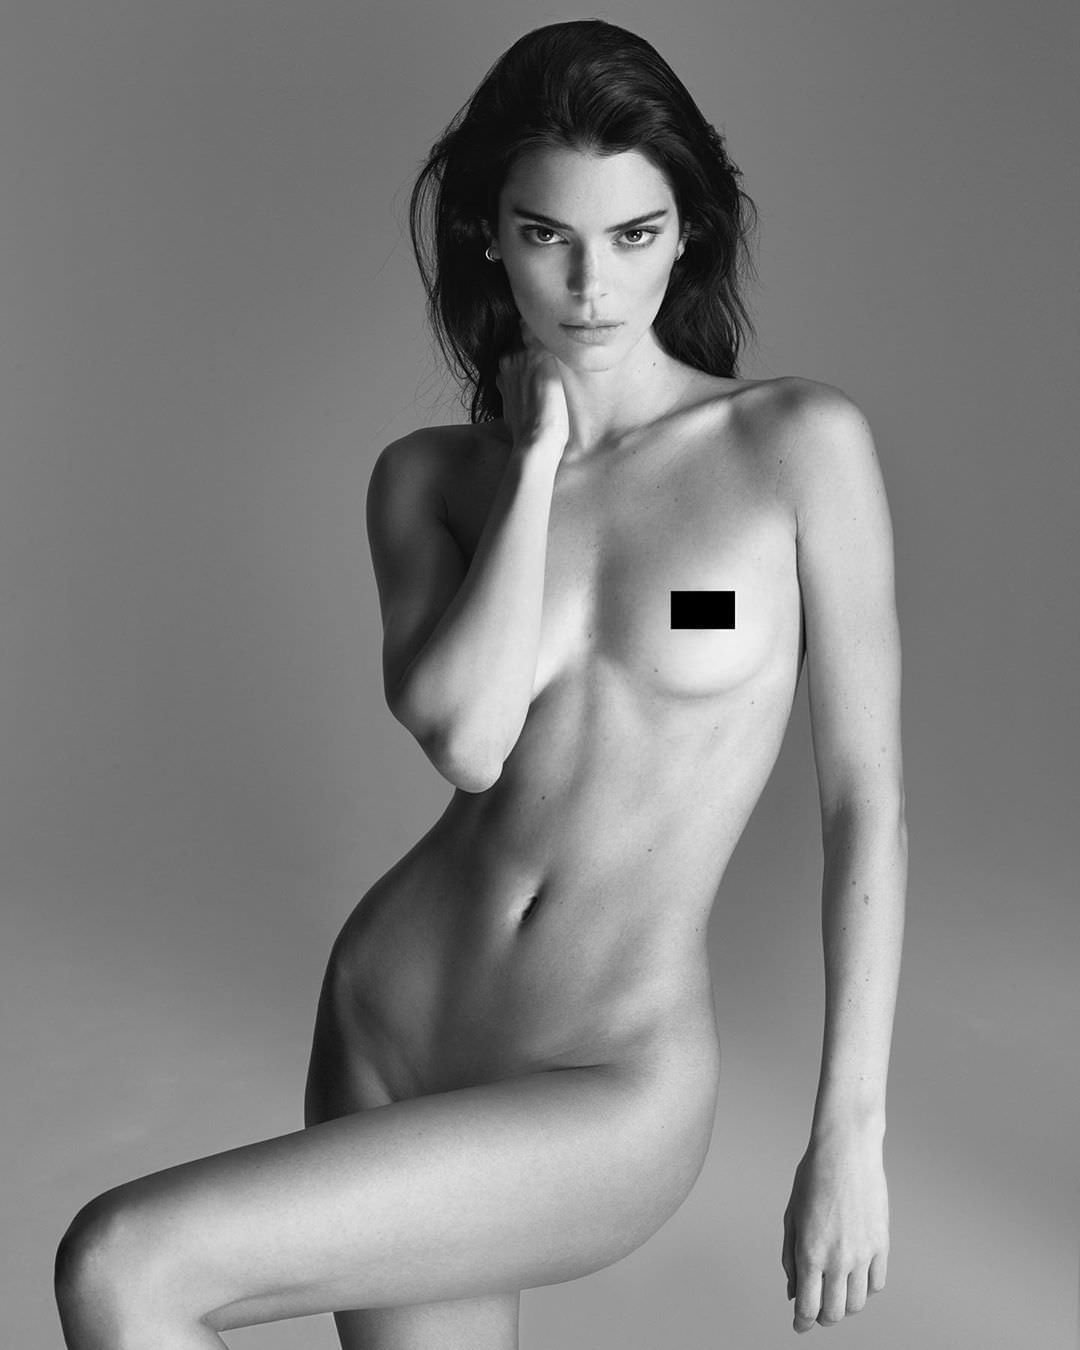 Jenner Family Leaked Nudes